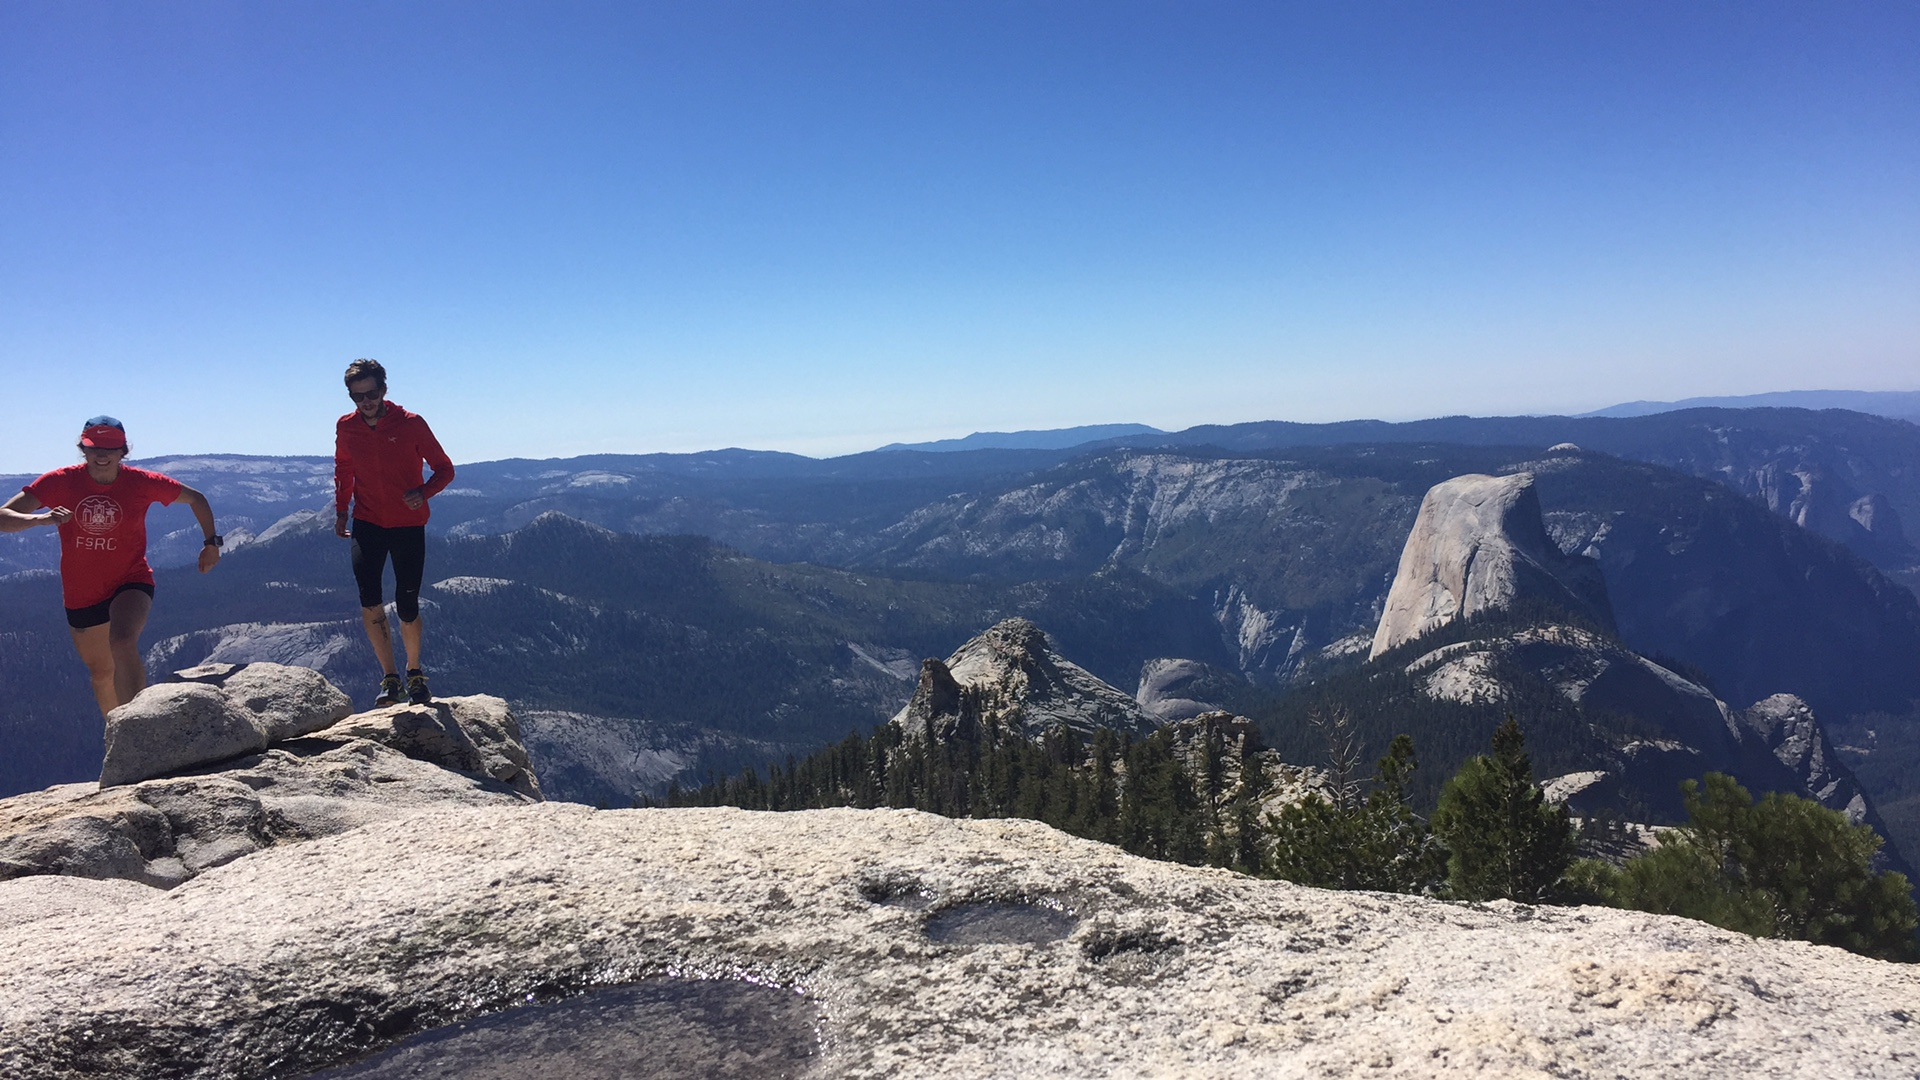 [ The summit of Clouds Rest w/ view of Half Dome ]